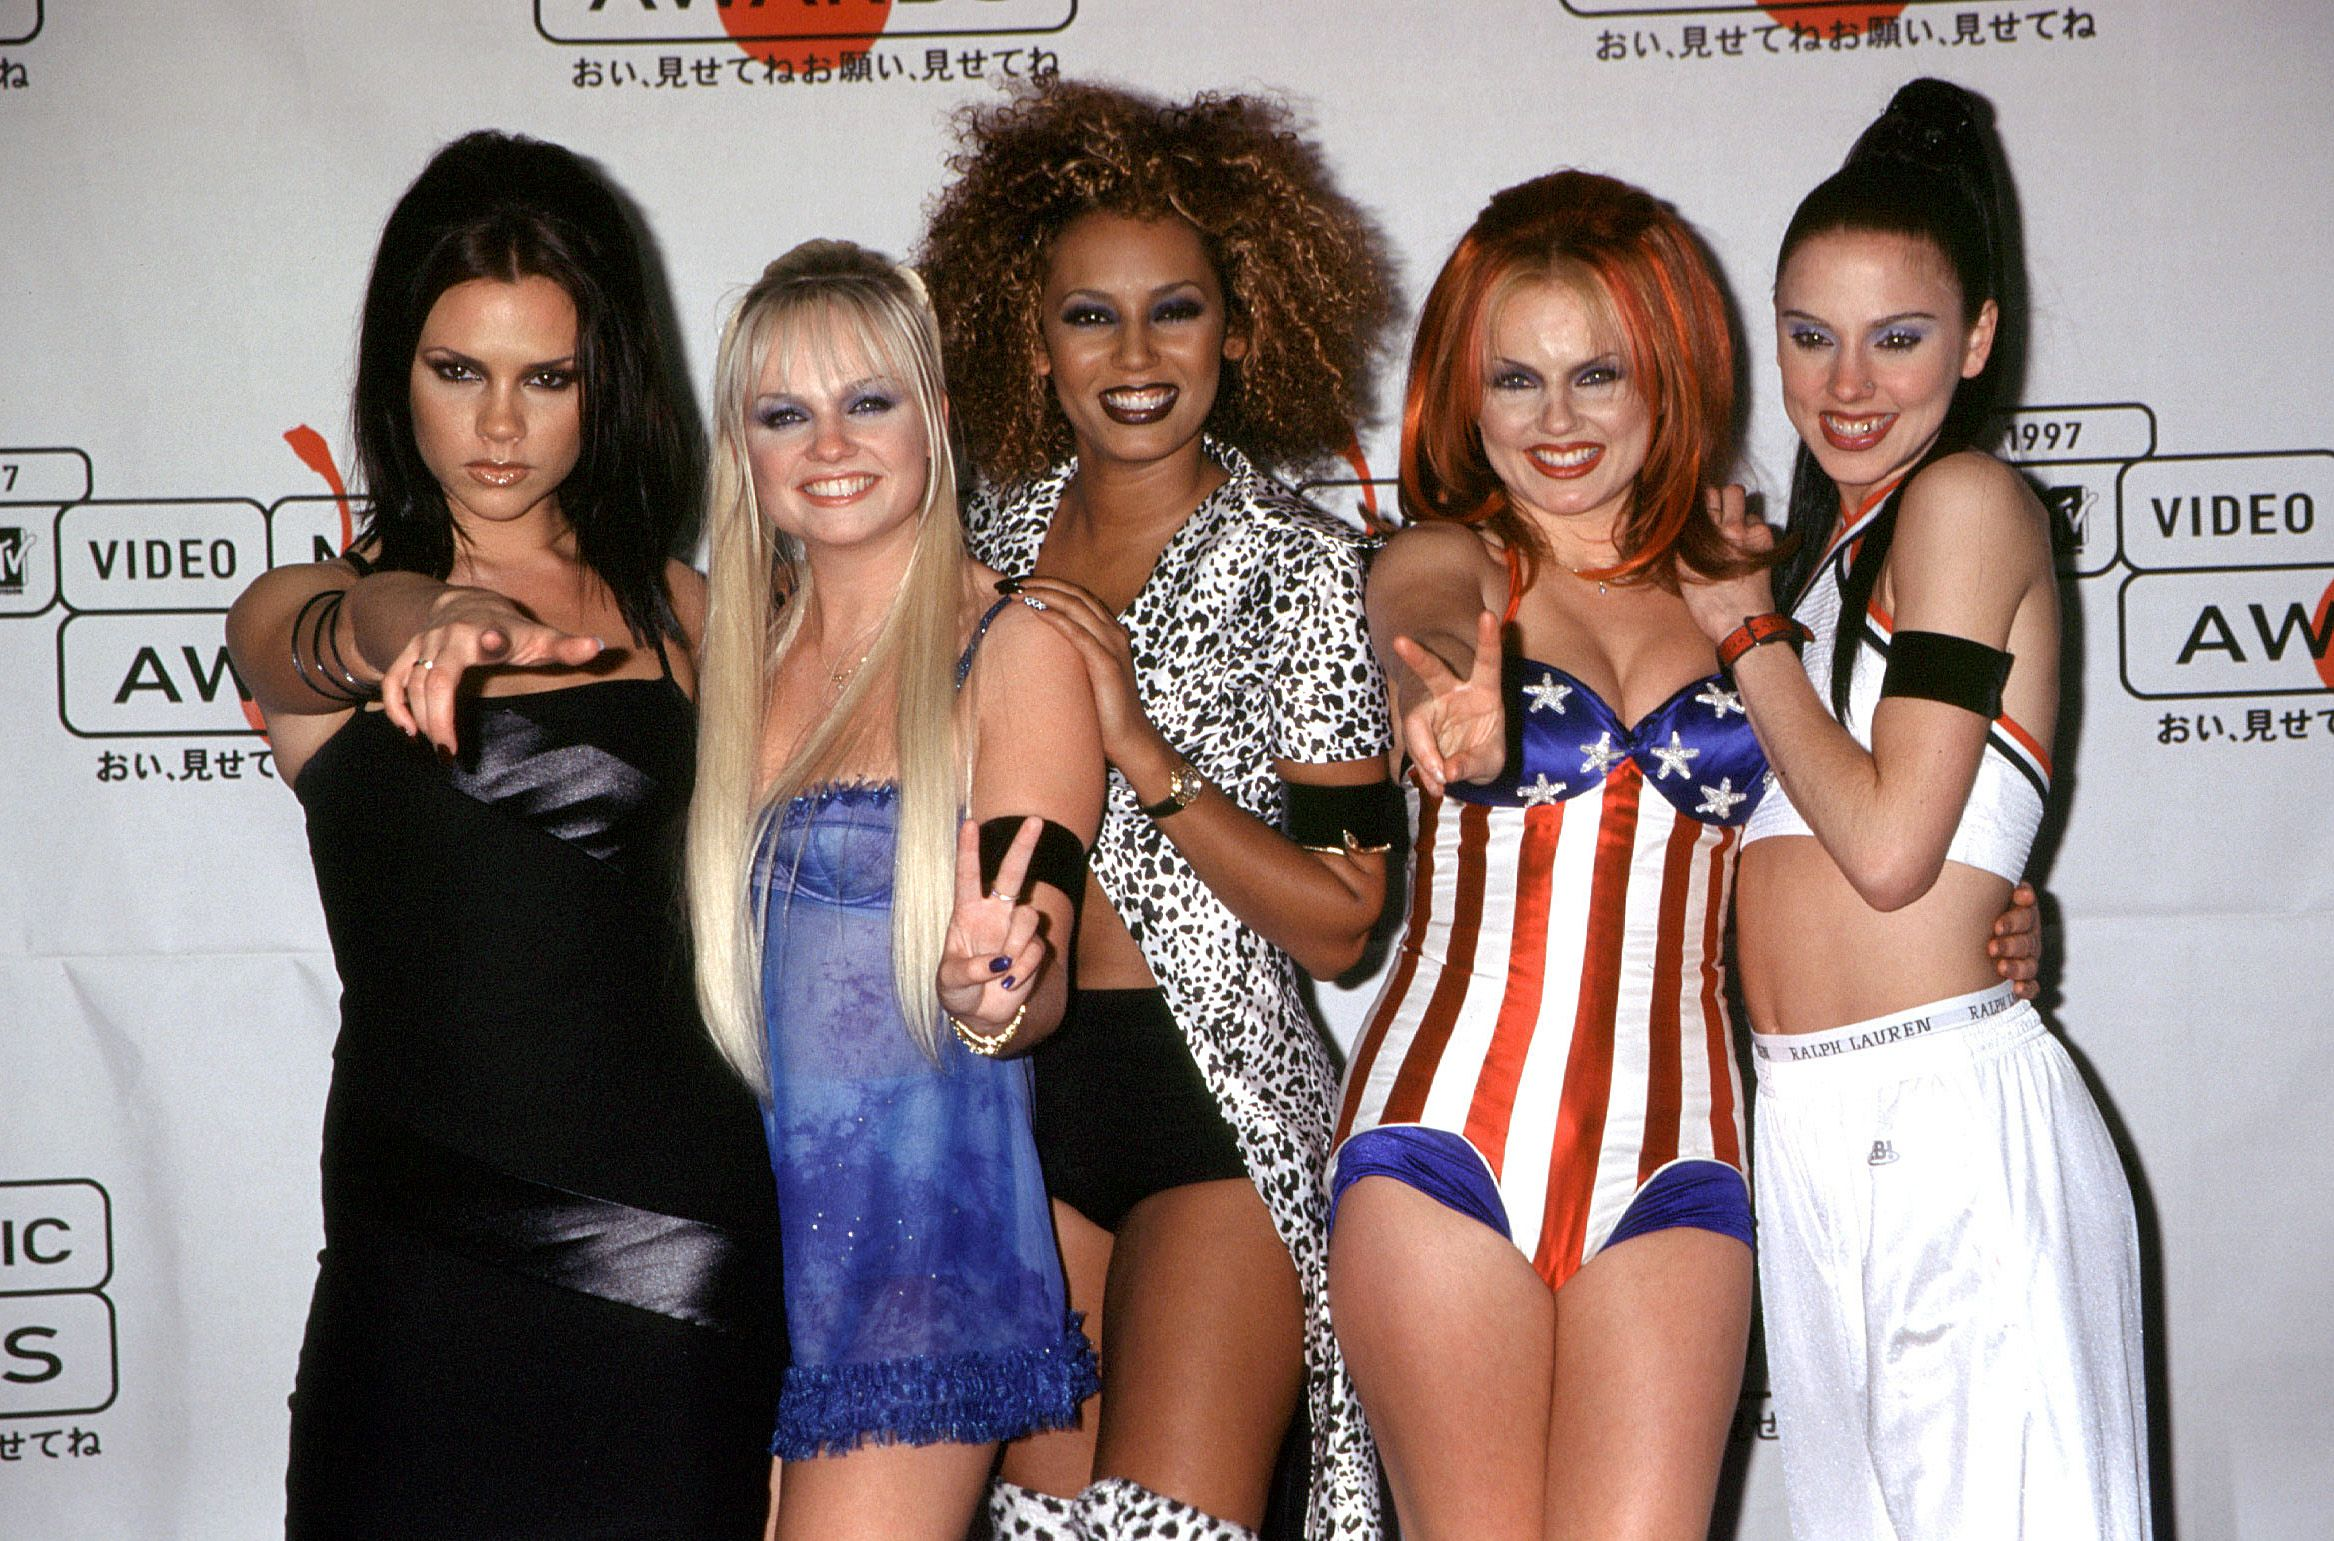 Halloween Costume Ideas for Girl Squads , Girl Group